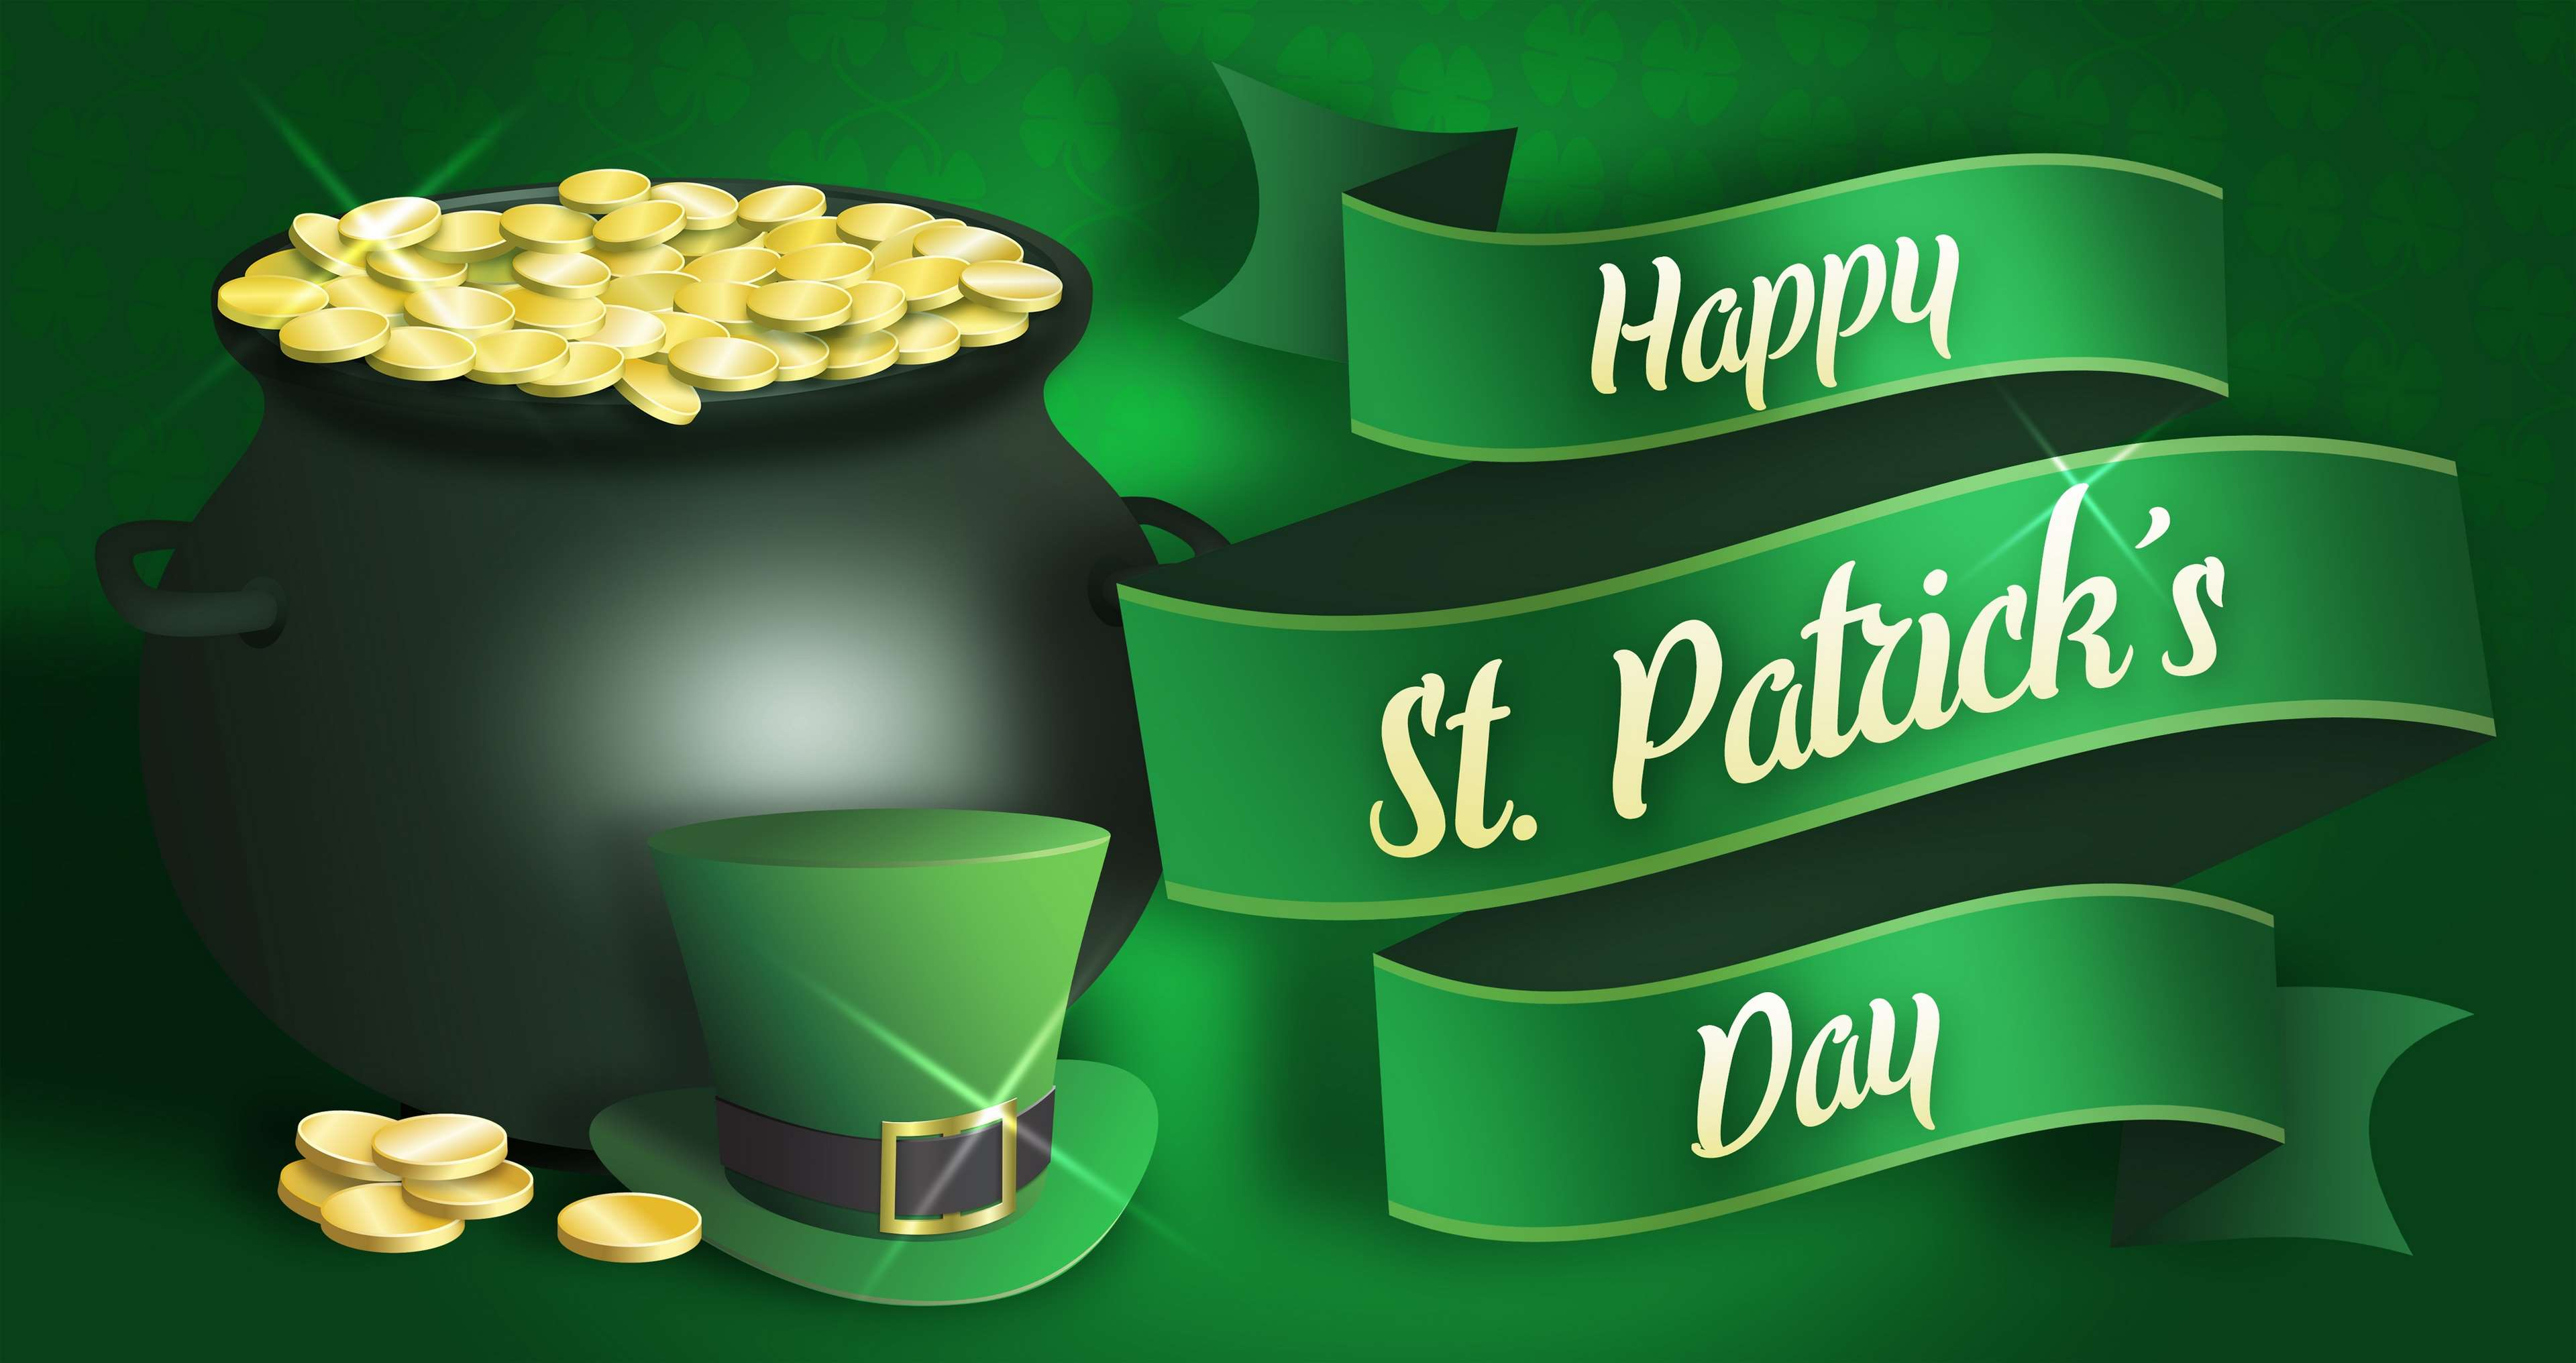 St Patrick's Day Wallpapers Hd St Patrick's Day Wallpapers ...